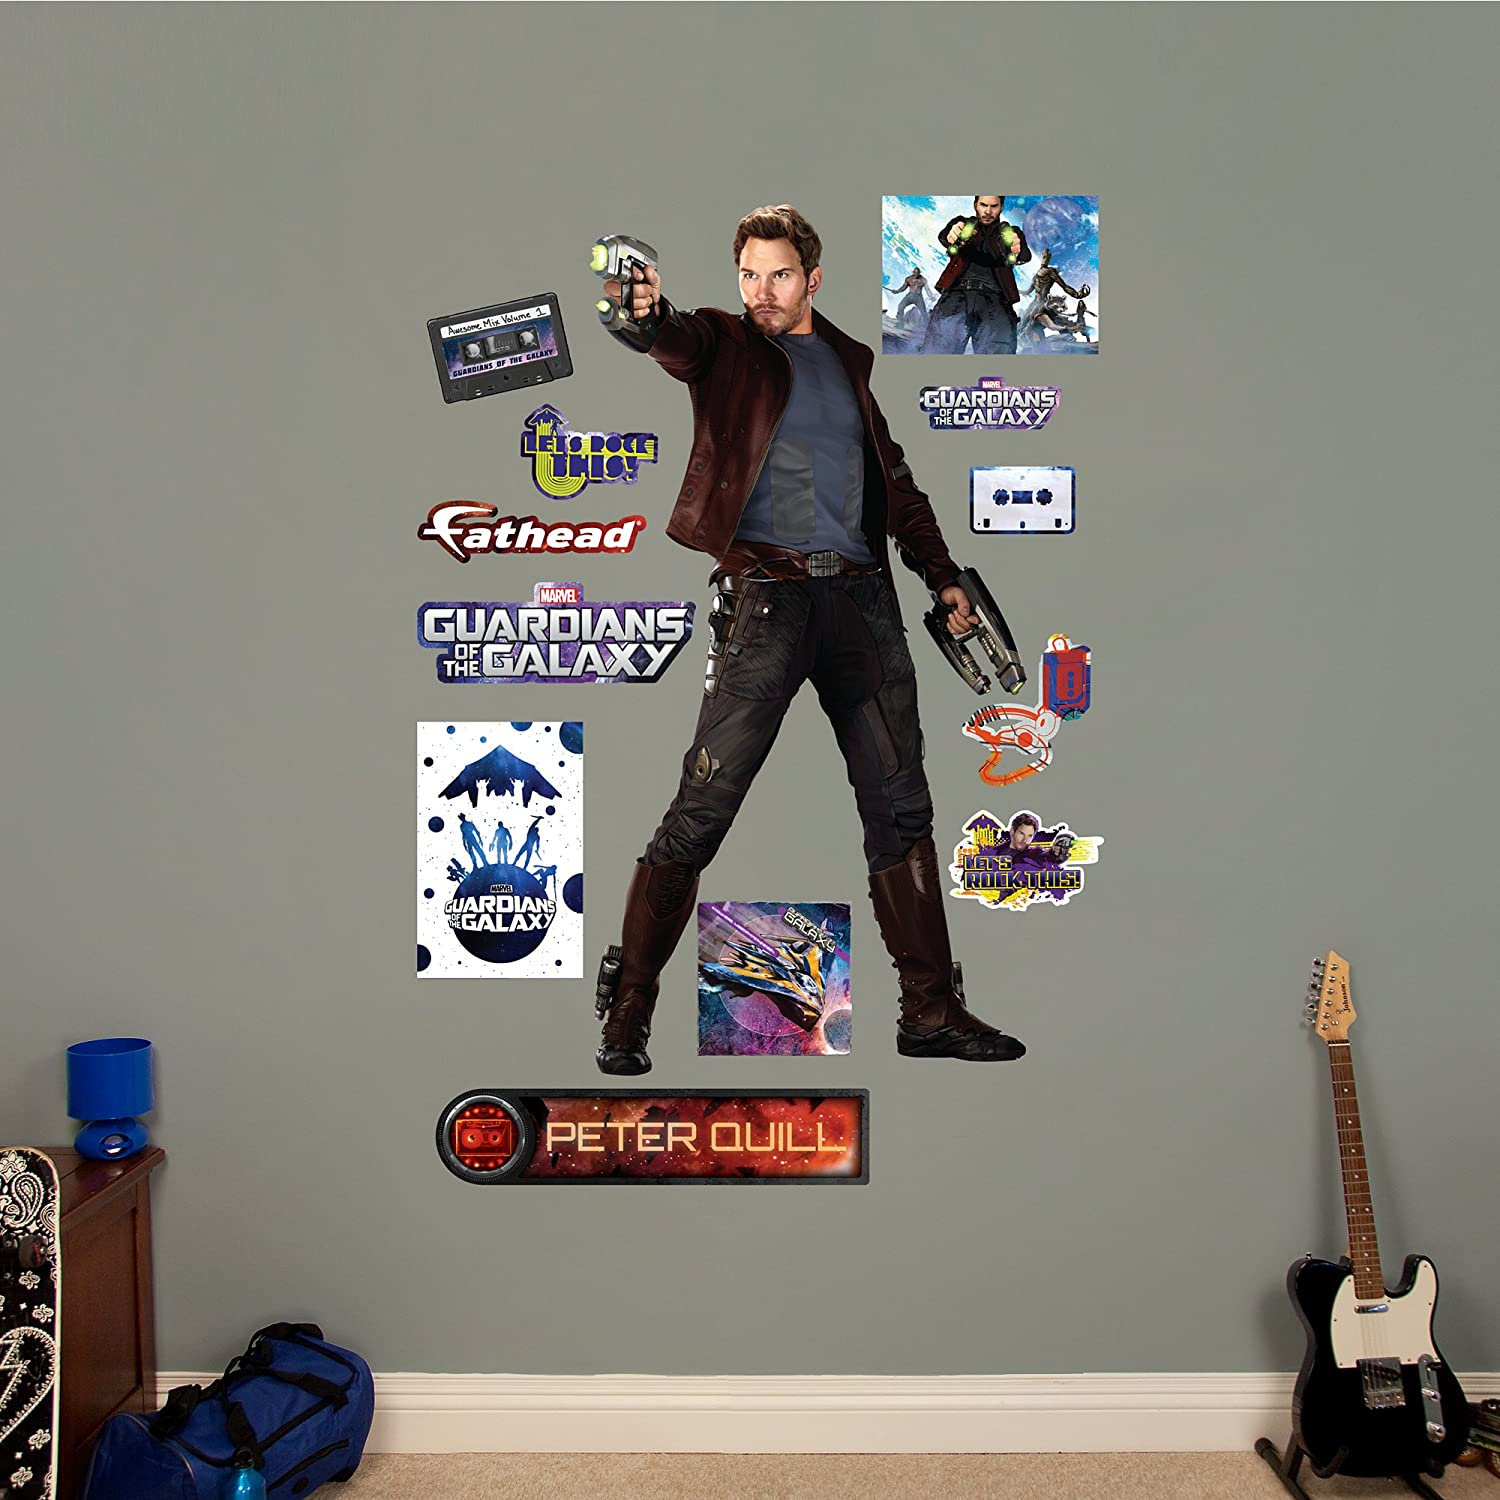 FATHEAD Peter Quill-Guardians of The Galaxy Wall Decal